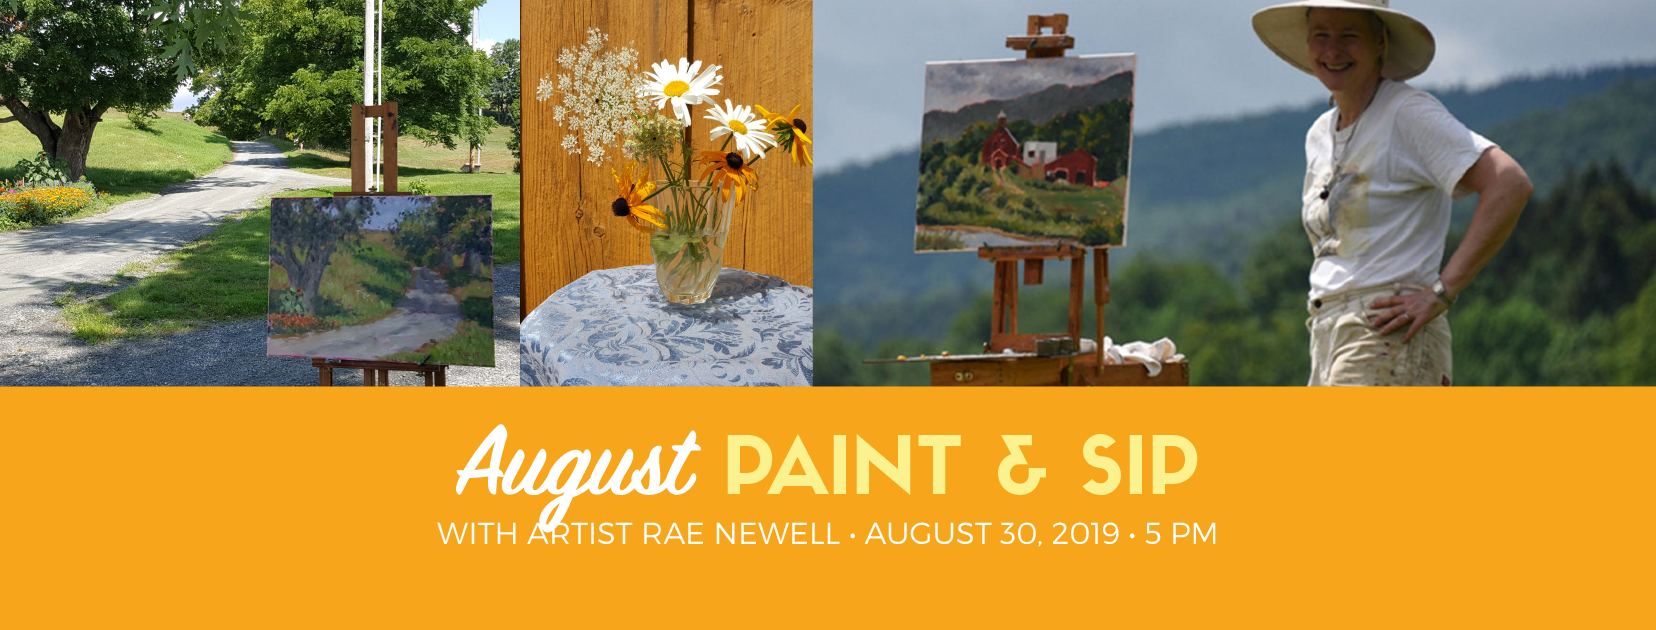 August Paint and Sip with Rae Newell